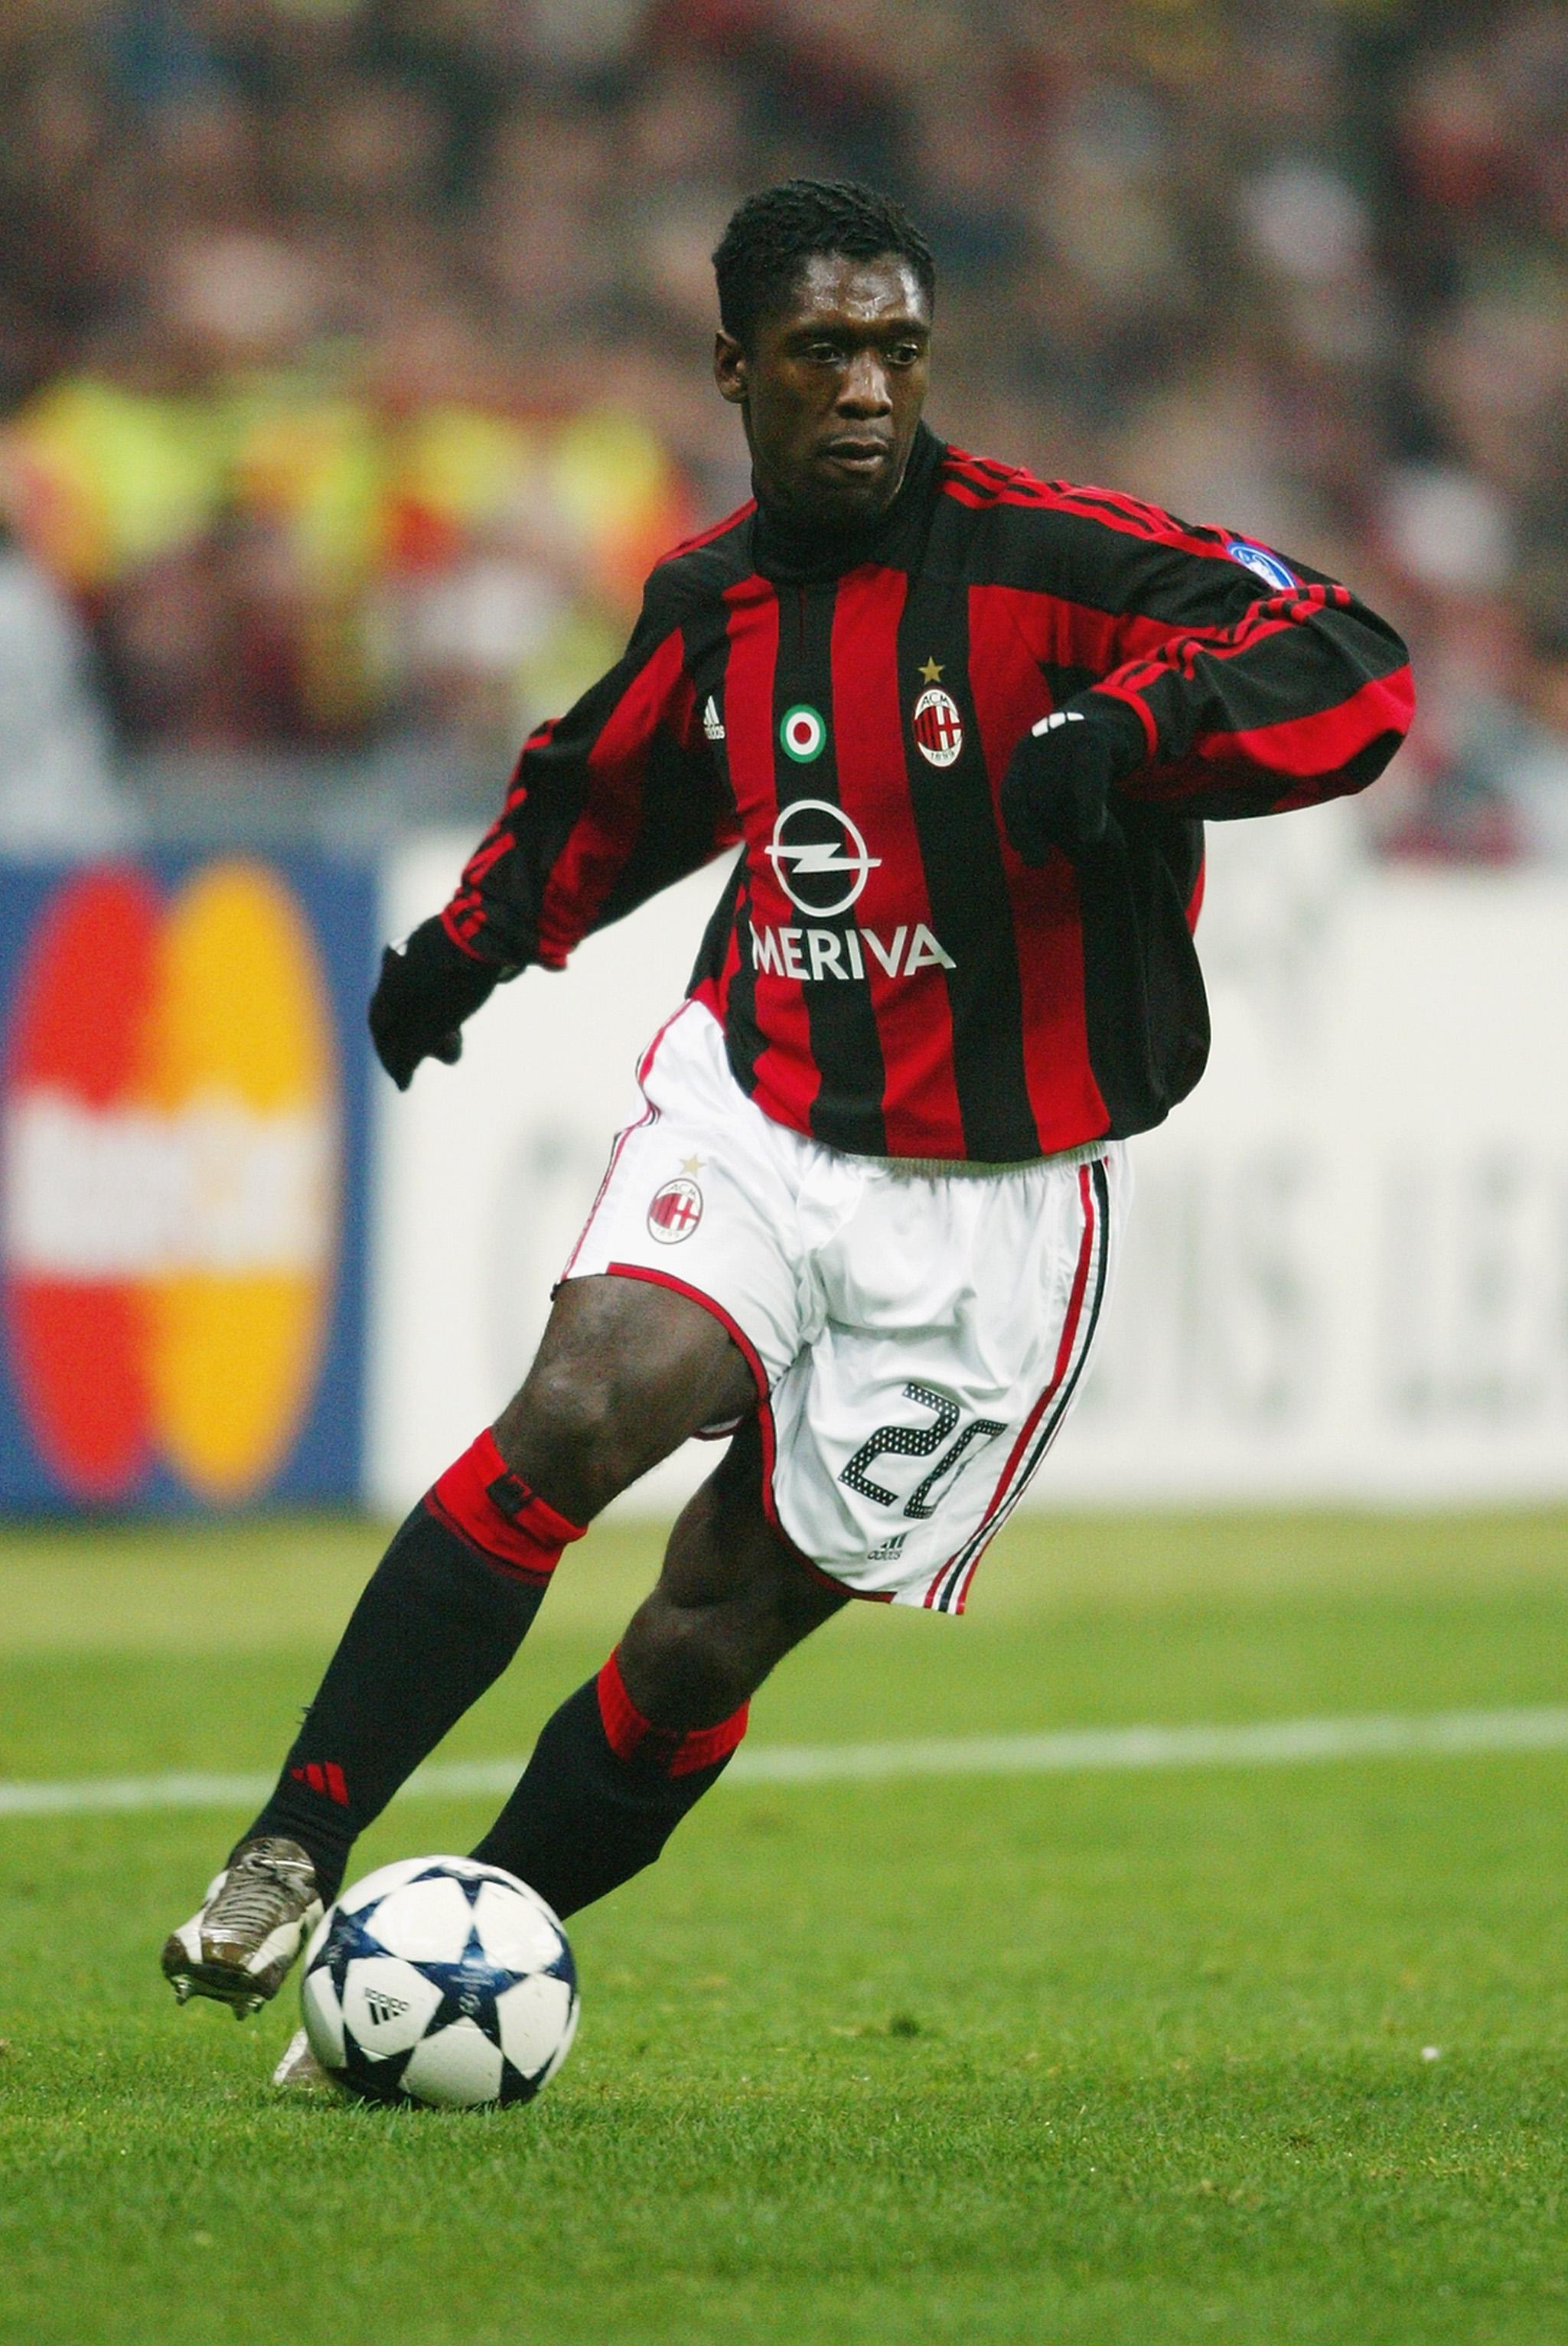 Seedorf won the Champions League with three different clubs